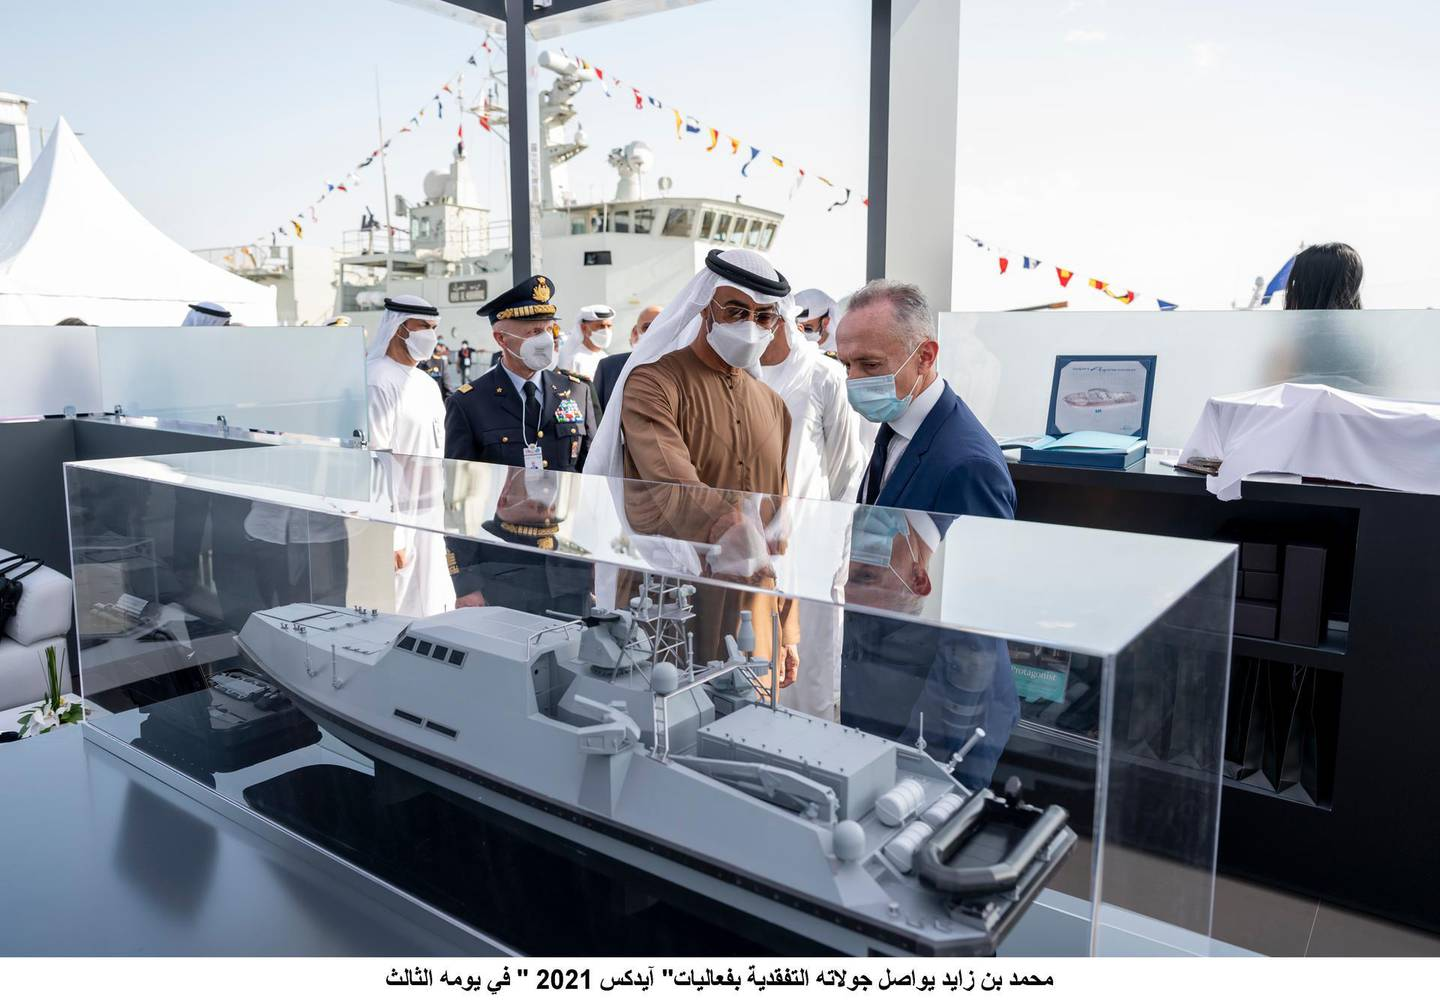 ABU DHABI, UNITED ARAB EMIRATES - February 23, 2021: HH Sheikh Mohamed bin Zayed Al Nahyan, Crown Prince of Abu Dhabi and Deputy Supreme Commander of the UAE Armed Forces (2nd R), tours the 2021 Naval Defence and Maritime Security Exhibition (NAVDEX), at ADNEC. ( Hamad Al Kaabi / Ministry of Presidential Affairs )---